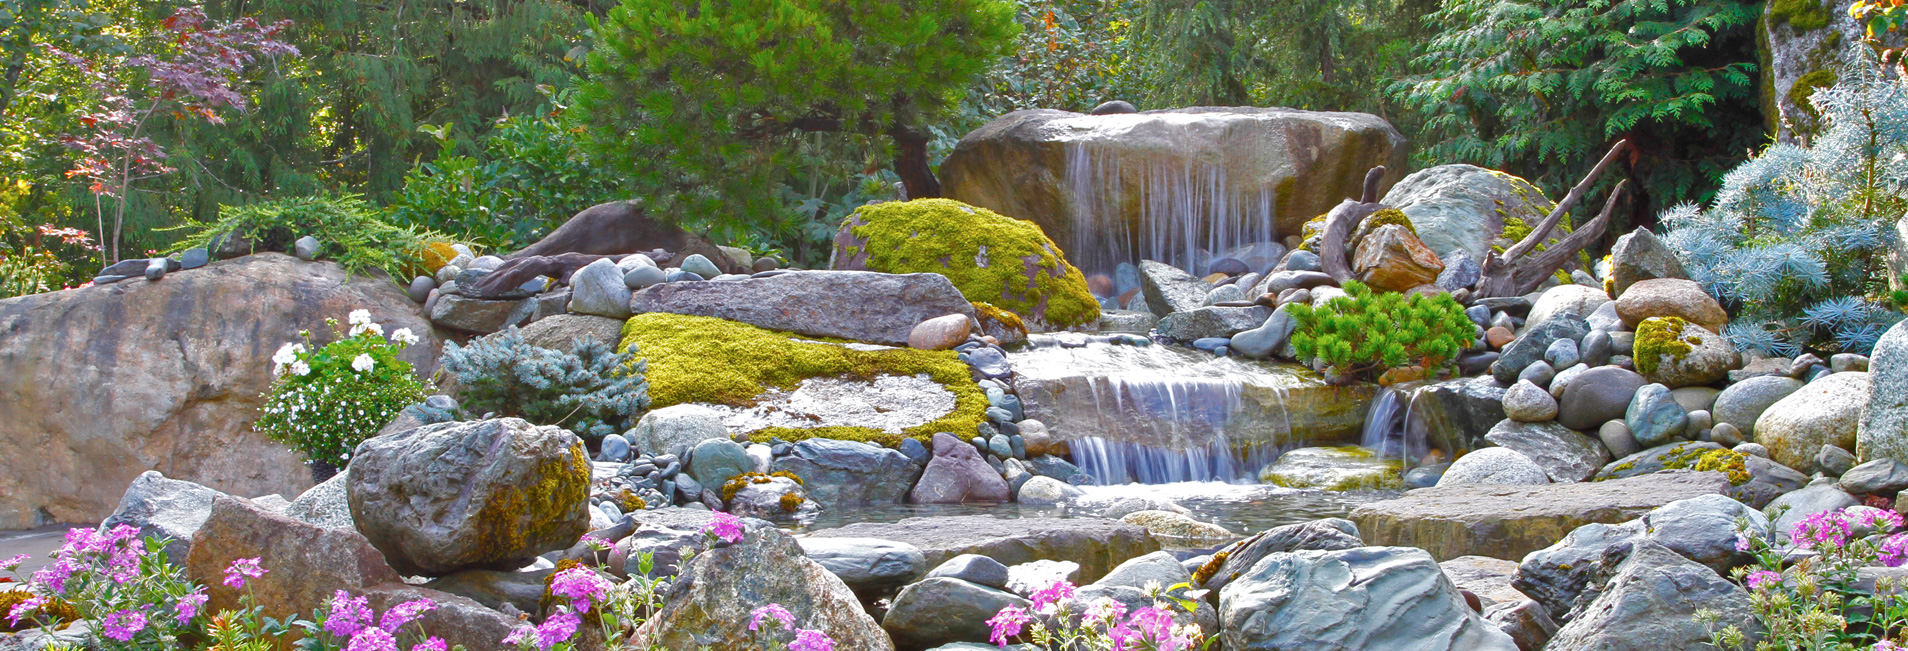 Waterfall with flowers, moss and landscaping